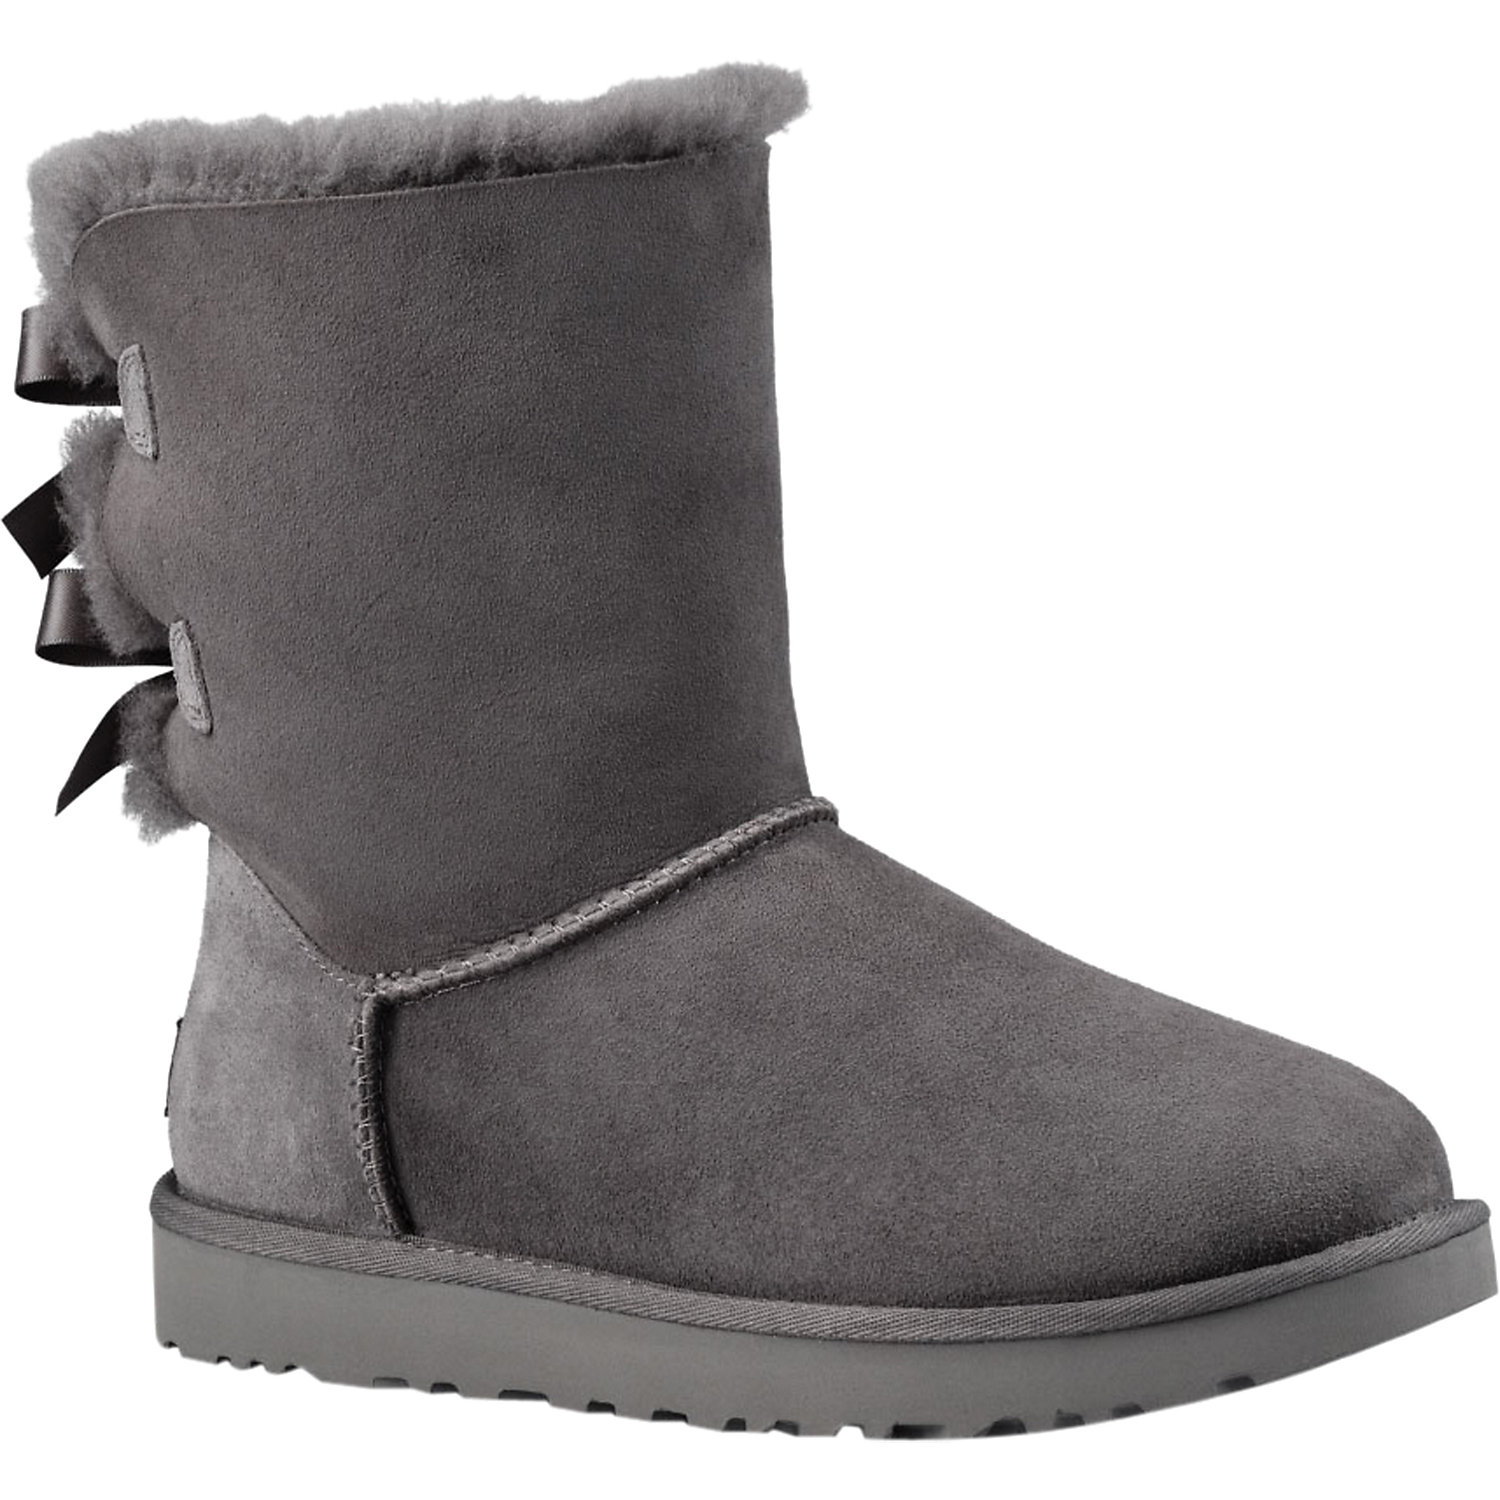 30a84db024d Ugg Women's Bailey Bow II Boot